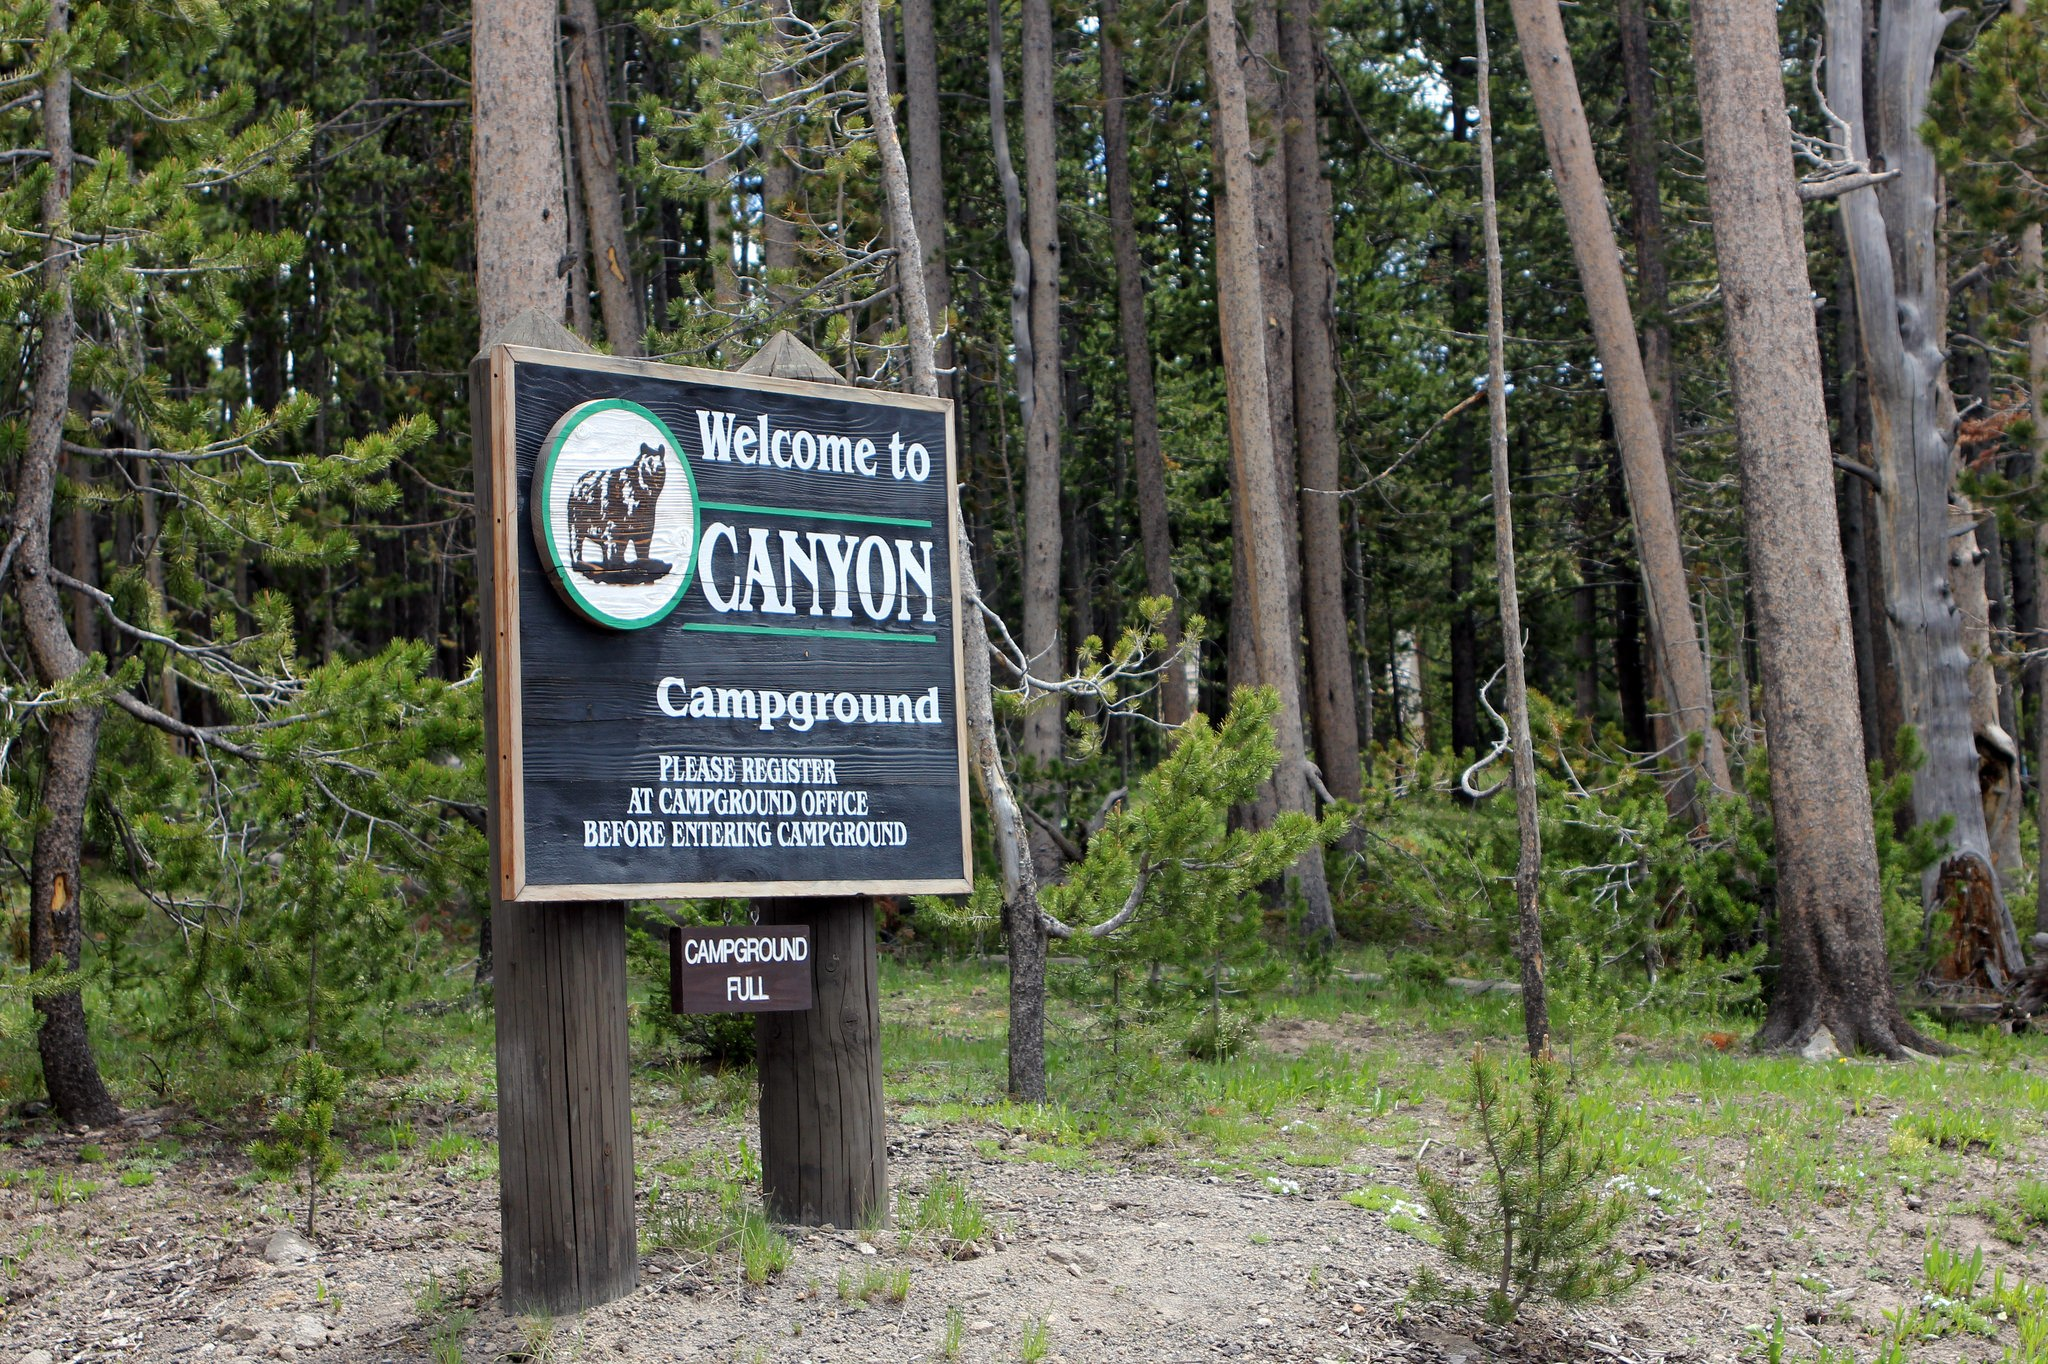 campground at yellowstone national park